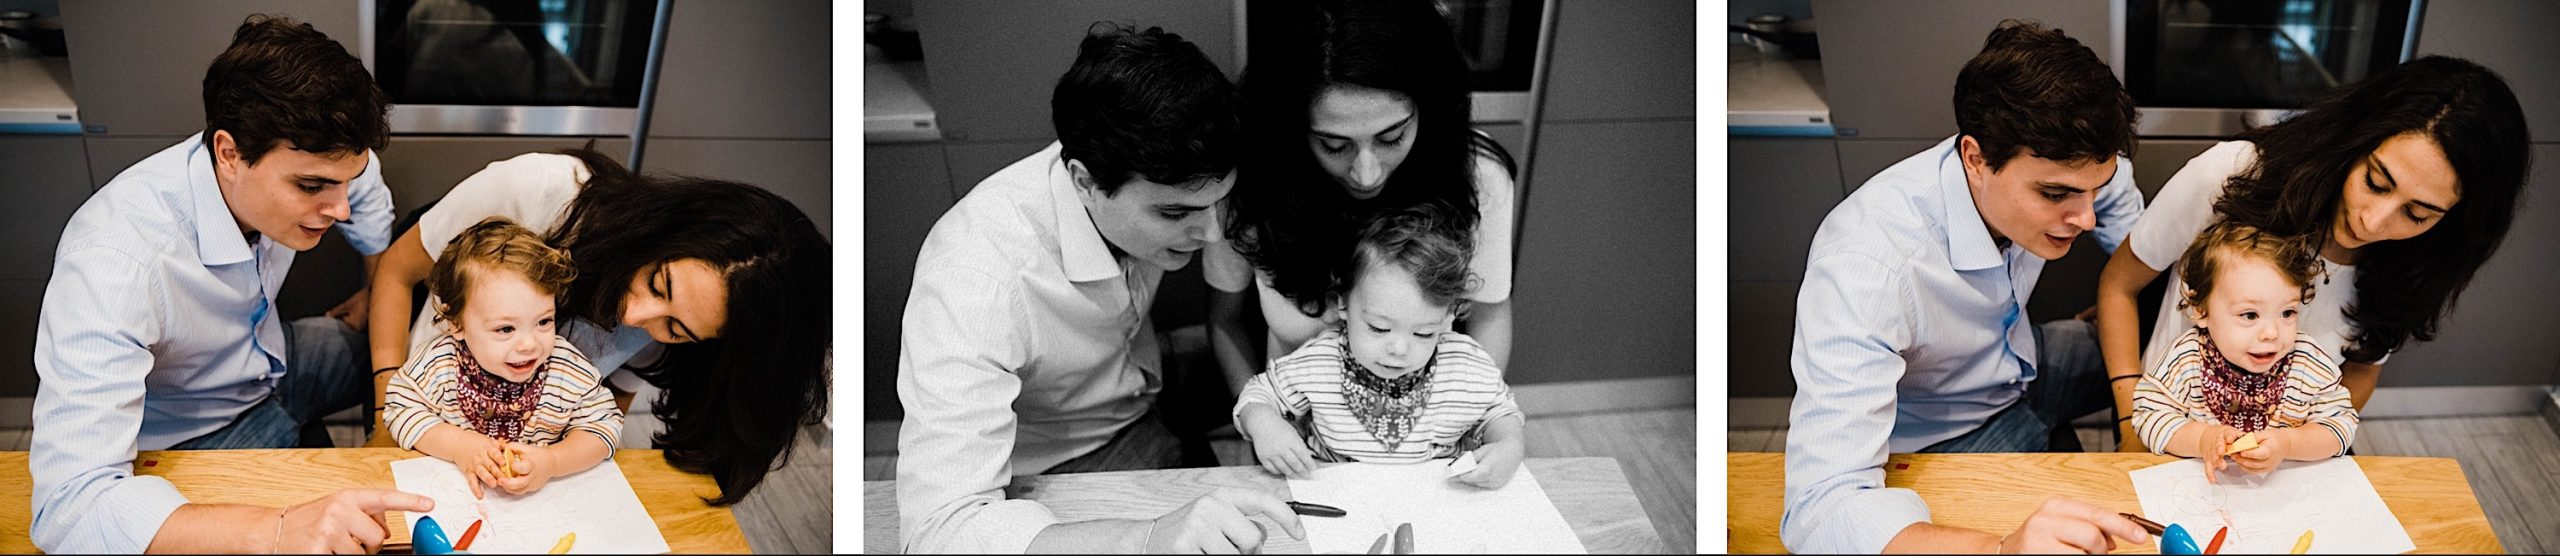 In-Home Family Photography of a family, in this case Mum, Dad & baby boy, drawing at a table together at their home in Milan, Italy.